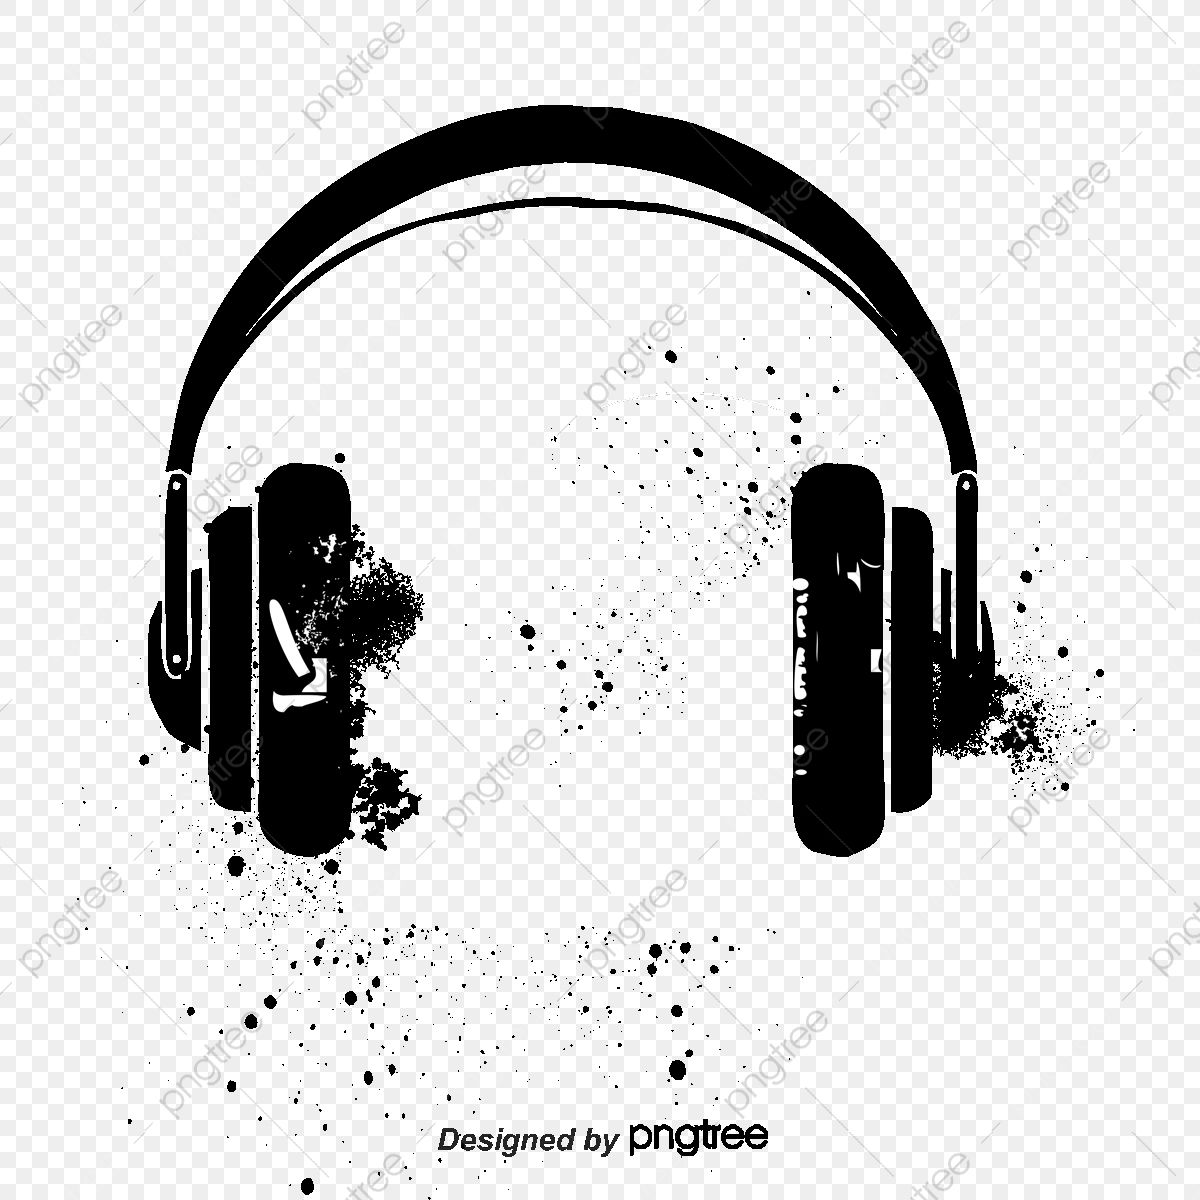 Vector Black Headphones Black Headphones Ink Ink Marks Png Transparent Clipart Image And Psd File For Free Download Black Headphones Black Friday Poster Music Tattoo Designs